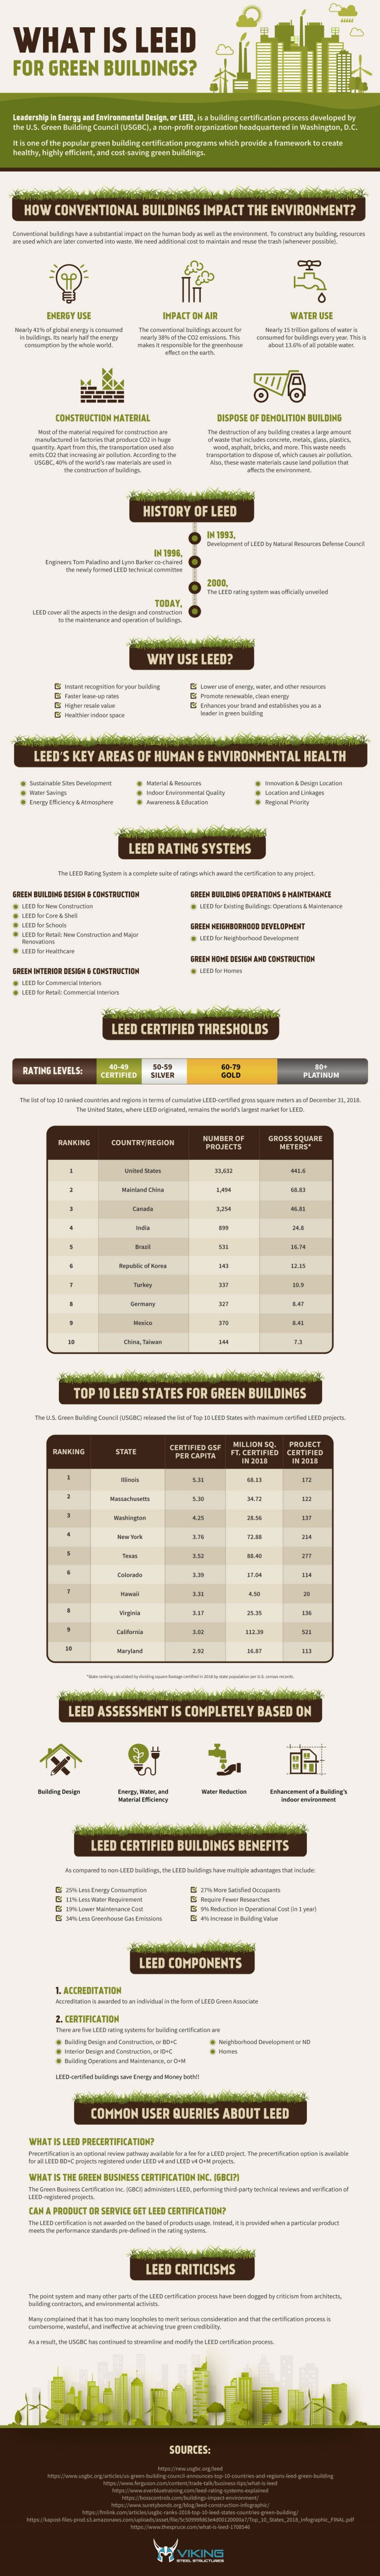 What is LEED for Green Buildings?